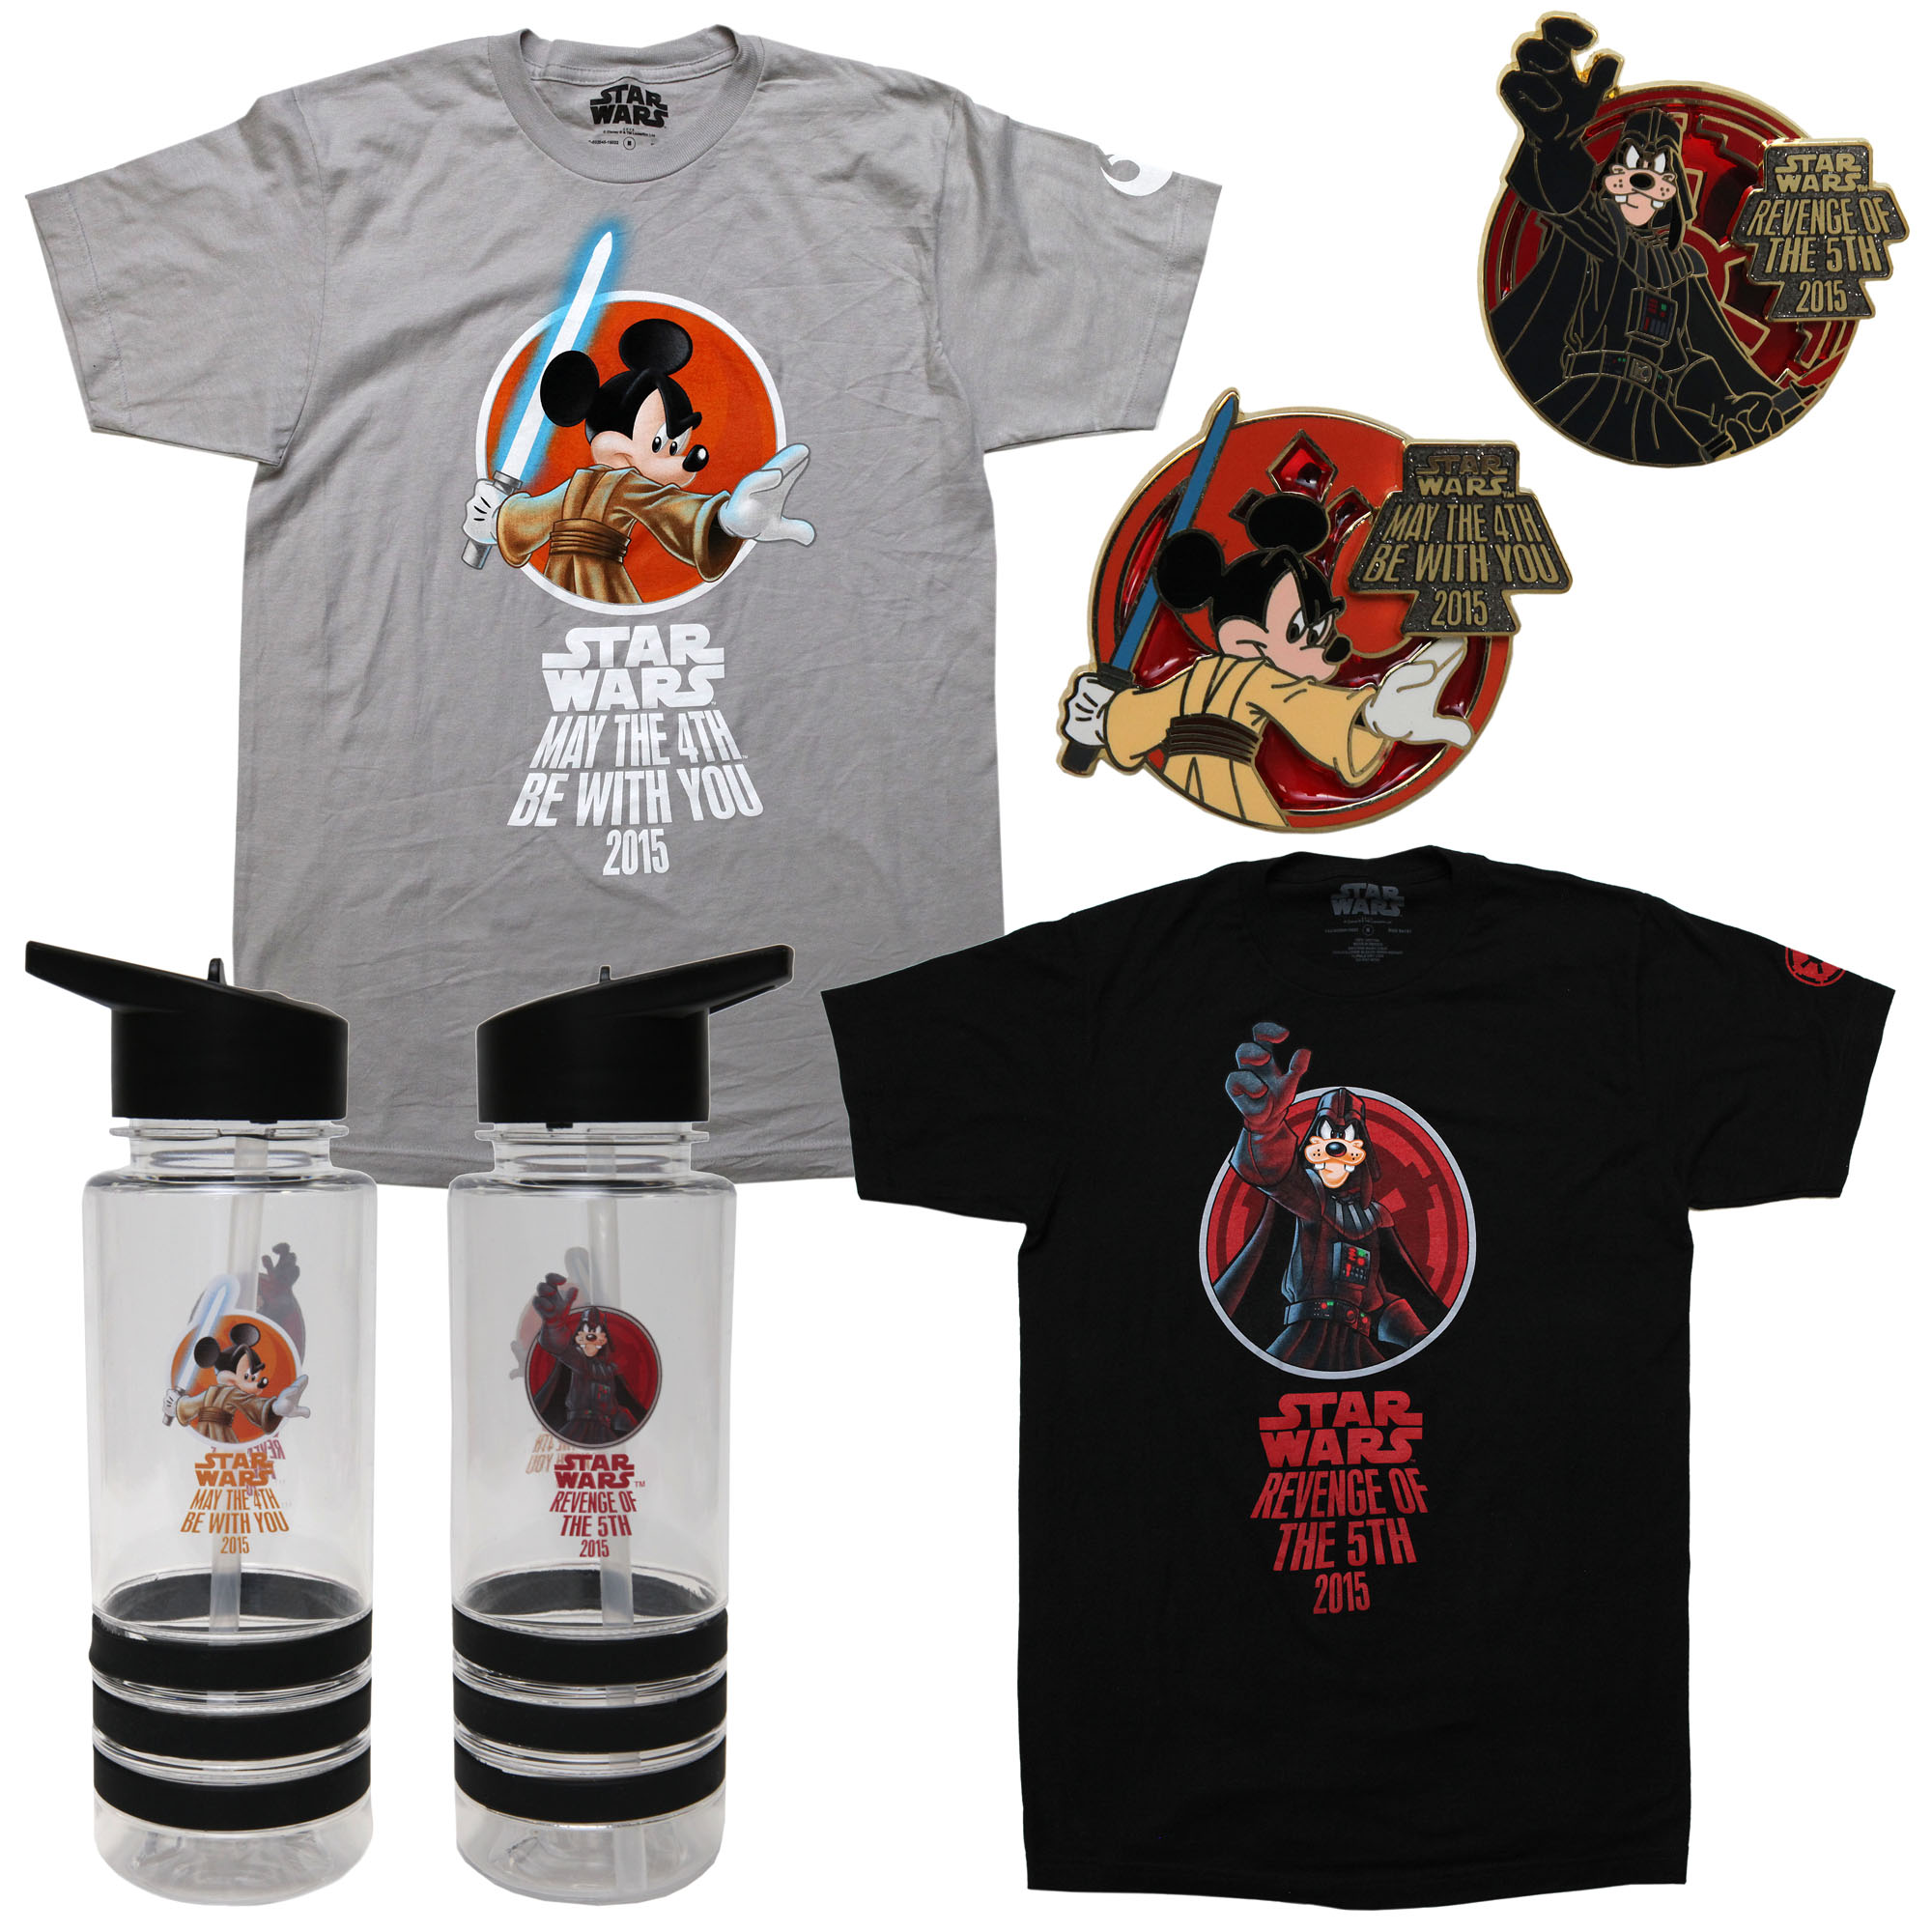 May The 4th Be With You Disneyland 2019: New Star Wars Day Merchandise Now Available At Disney